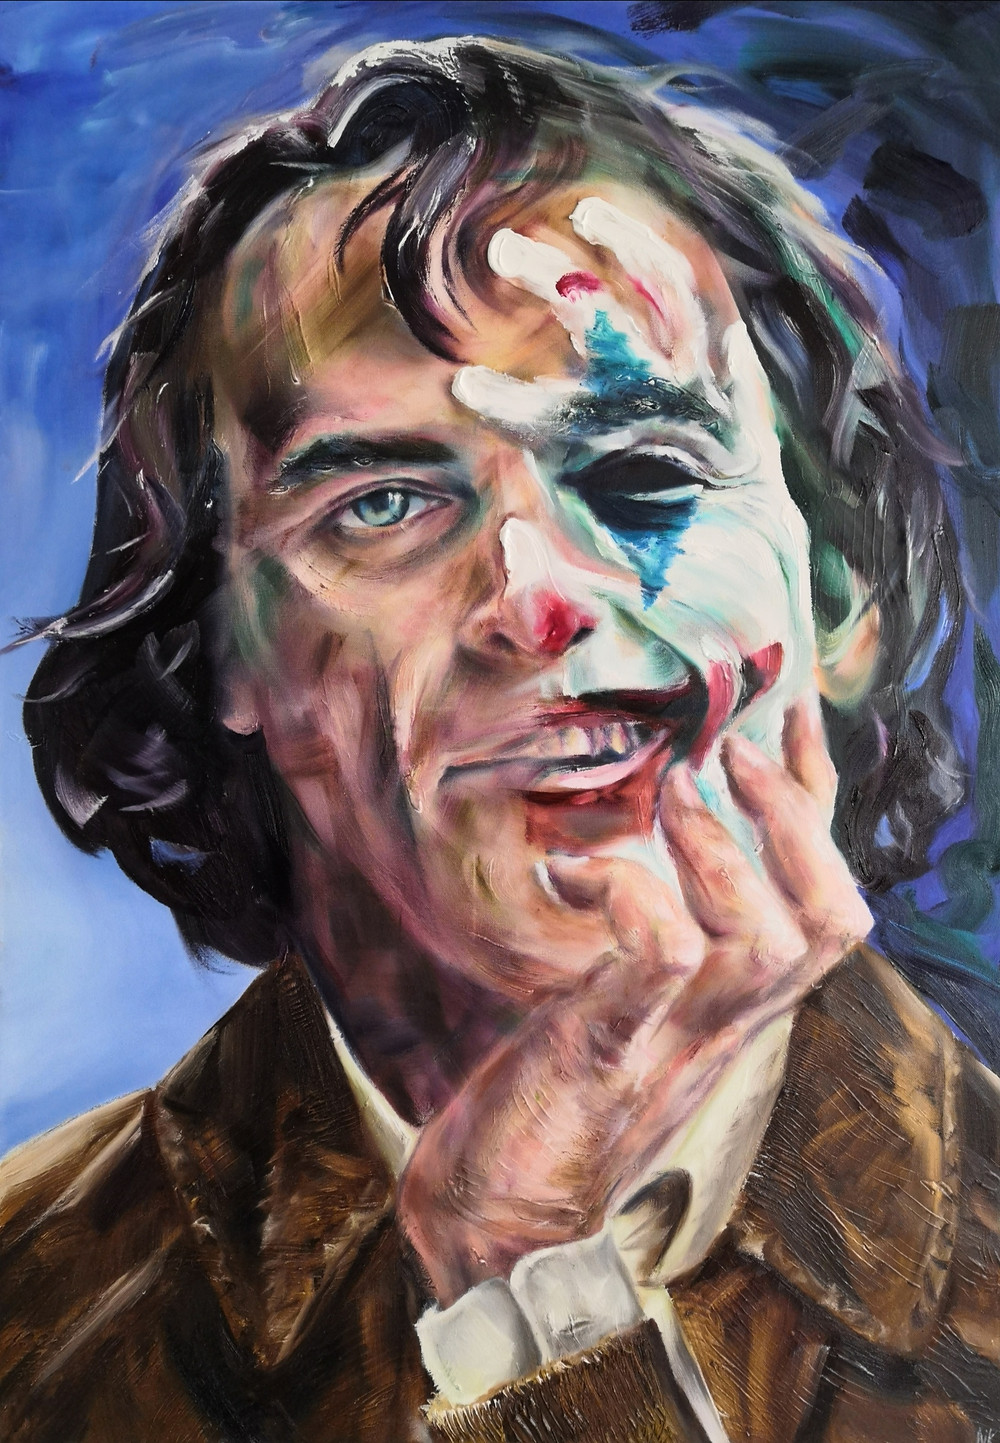 This artwork made is my interpretation of Joaquin Phoenix becoming the Joker in the award winning film, recently released in Britain and might well earn Joaquin his first Oscar...? The painting depicts shy, awkward Arthur Fleck getting into character as he applies make-up with his hand... or is he uncovering his real self by stripping the everyday face off?